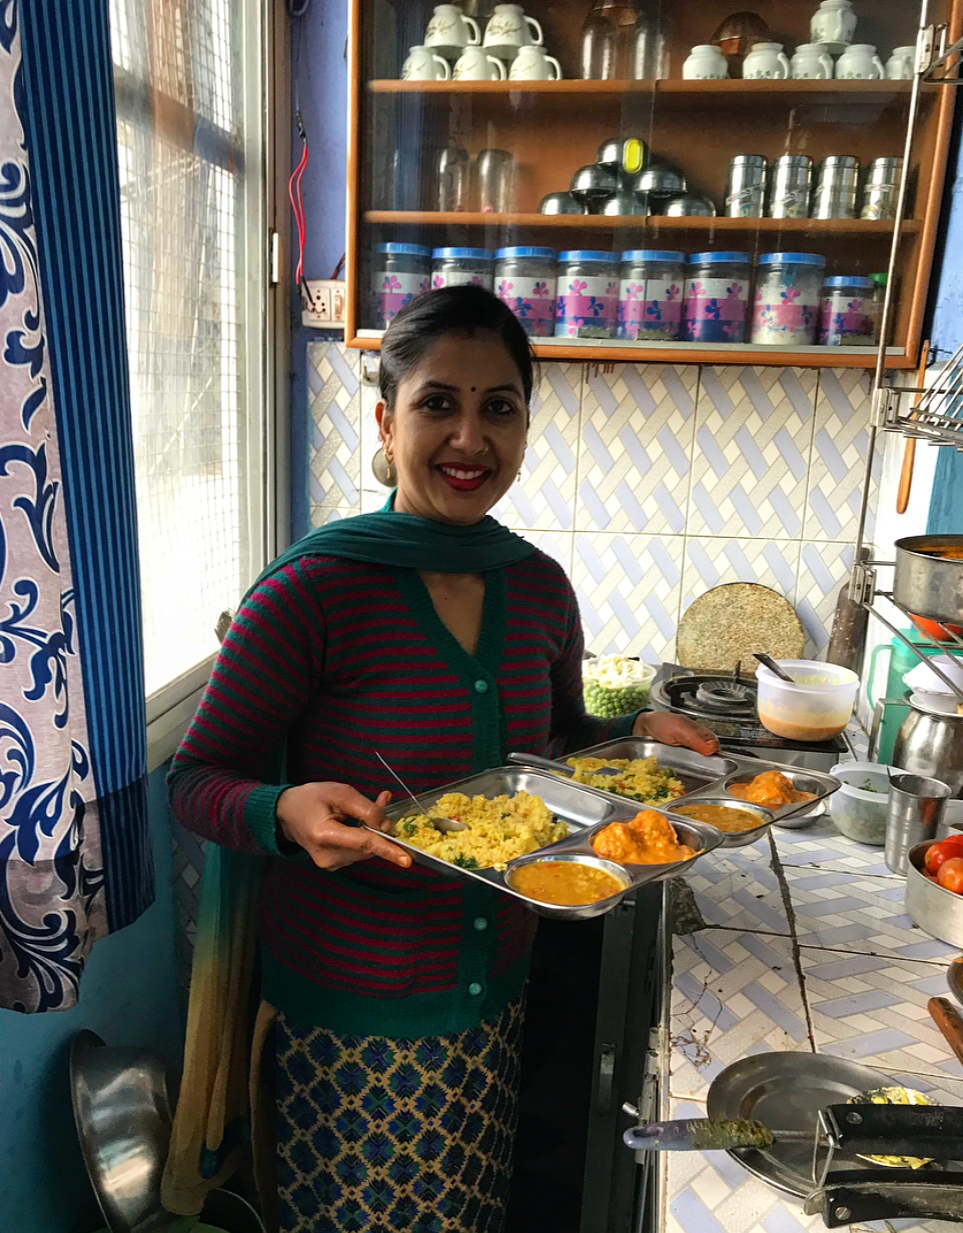 This tiny space is the whole kitchen, yet we still managed to make such an amazing food at Rajnee's!